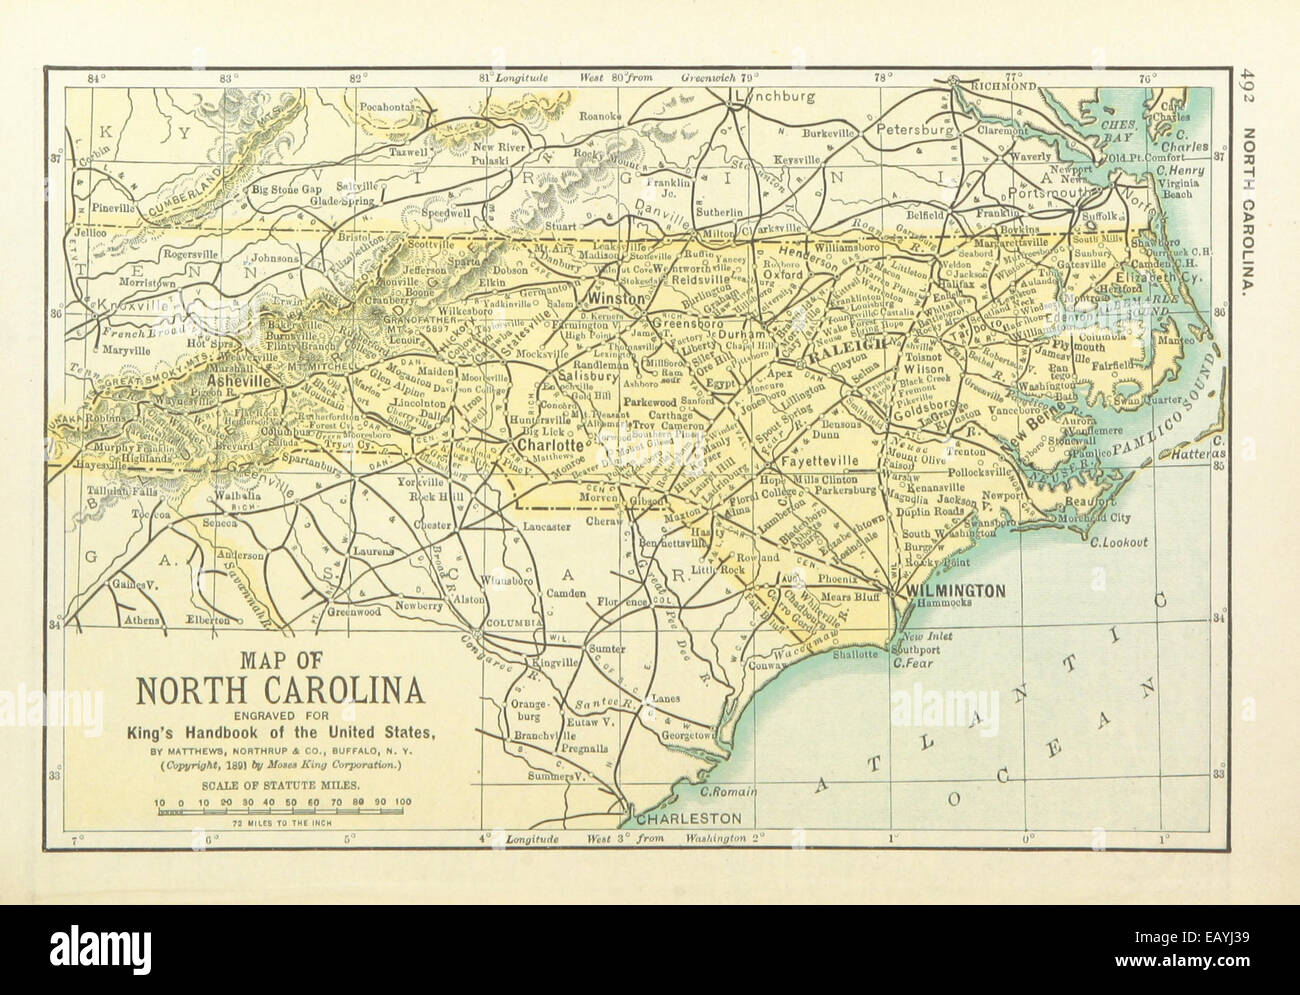 Us Maps1891 P494 Map Of North Carolina Stock Photo 75594941 Alamy - North-carolina-map-of-us